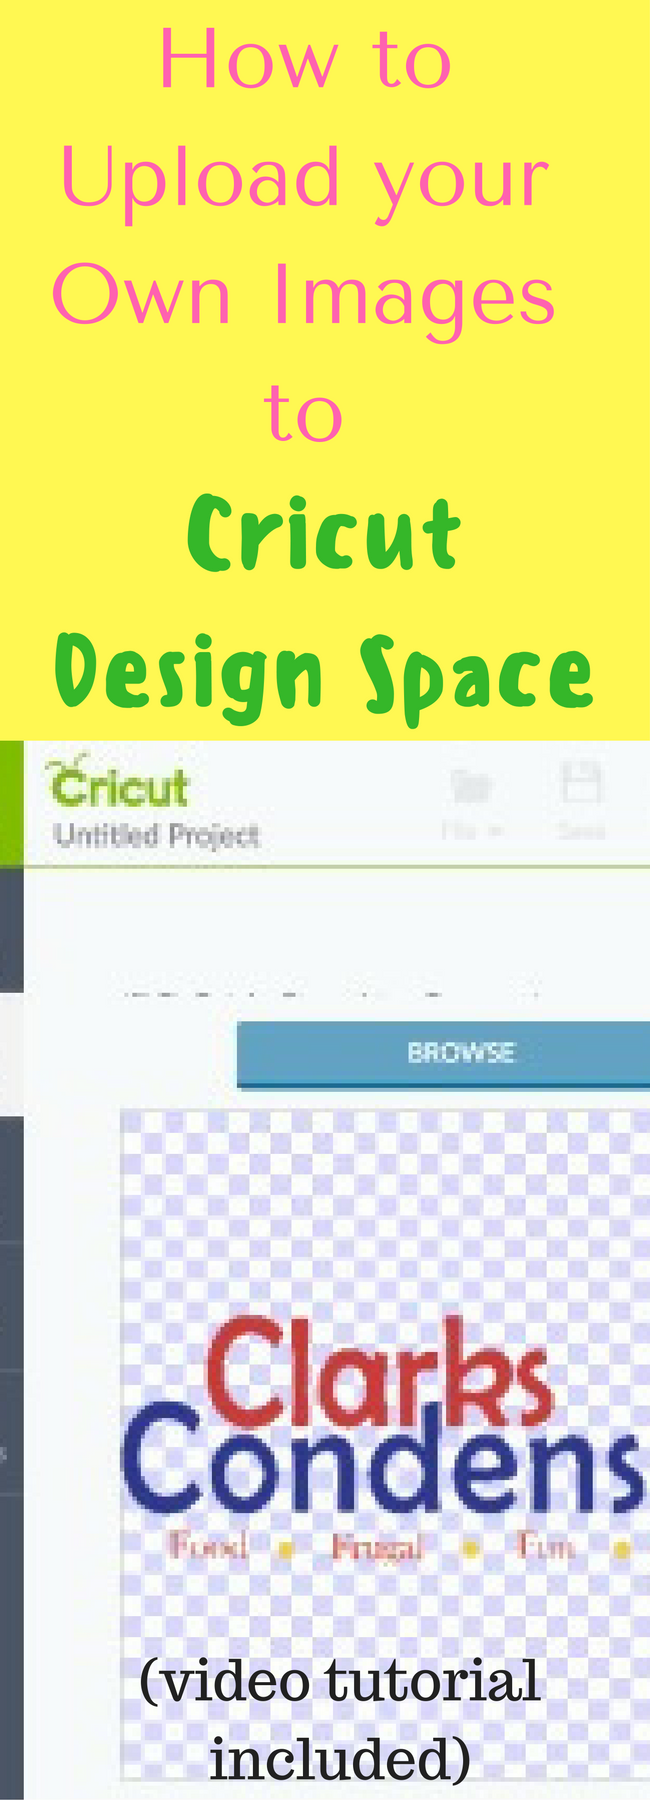 Cricut / Cricut Explore Air / Cricut Tutorial / Cricut Design Space / Cricut Tutorials / Cricut Projects / Cricut How-tos / How to Use Cricut Machine